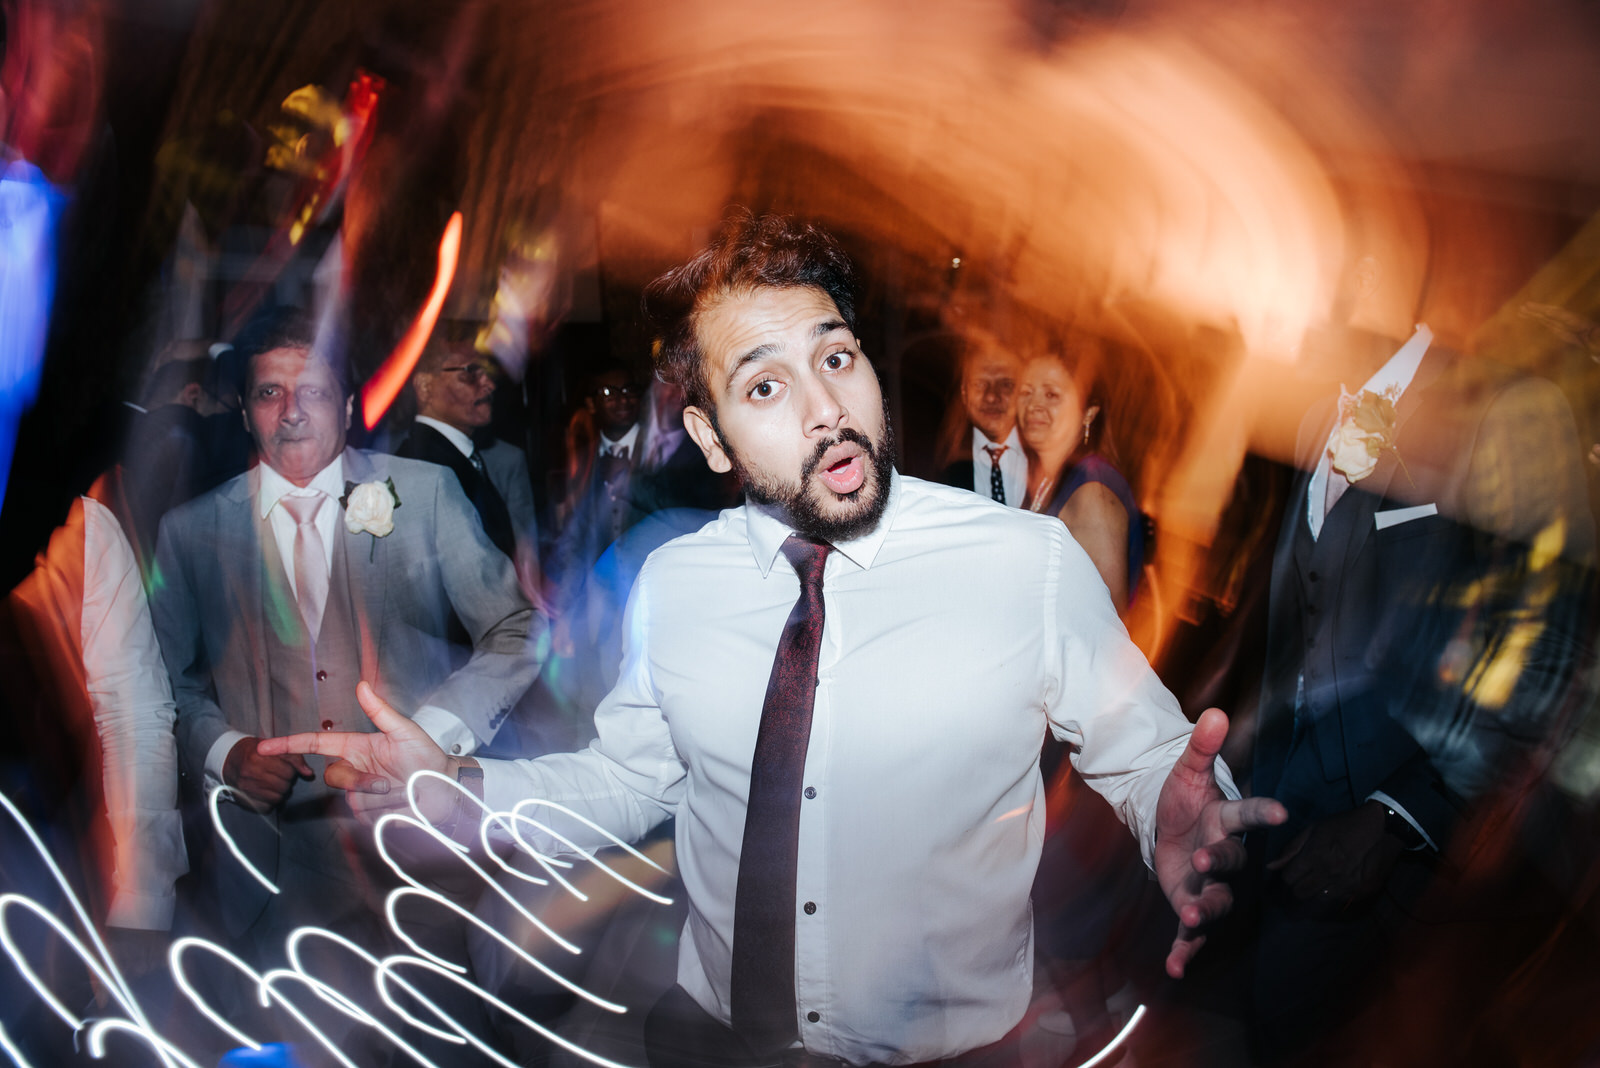 Guest dances under discolights during wedding party